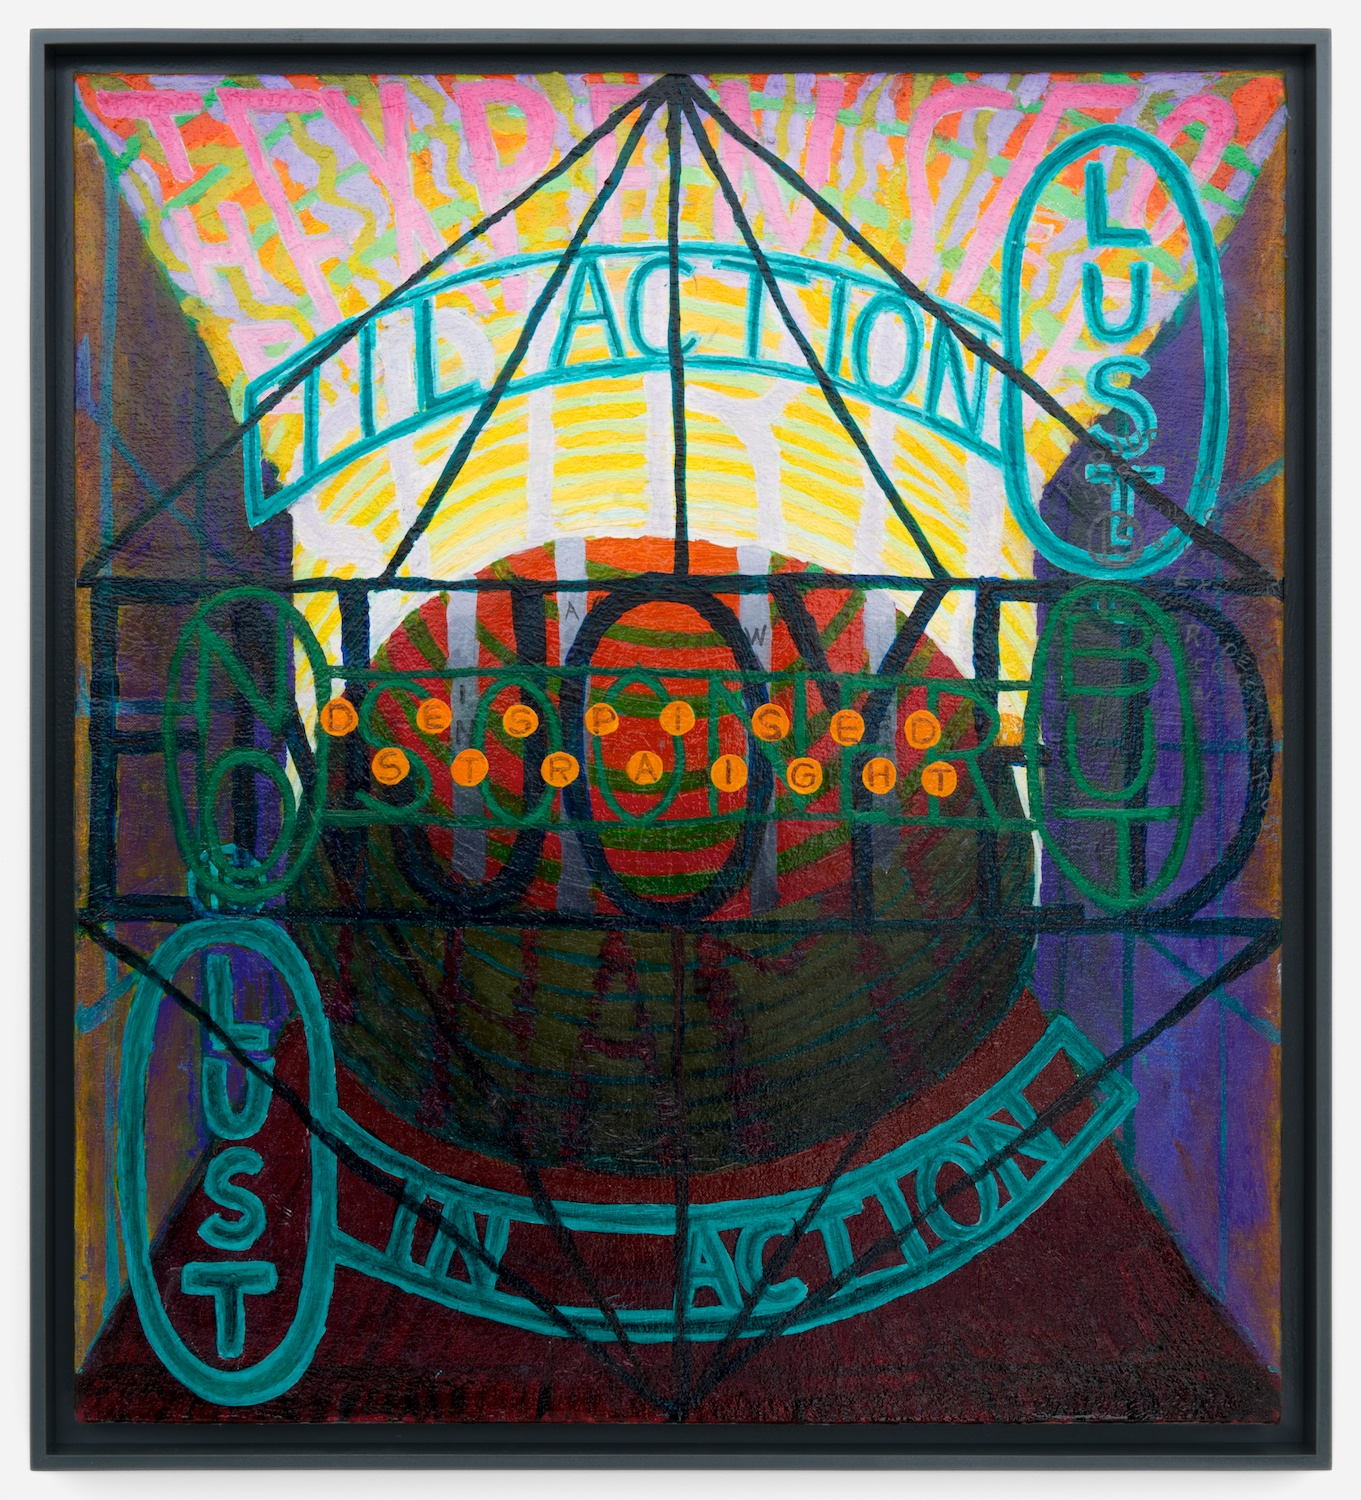 Philip Hanson  The expense of spirit (Shakespeare)  2012 Oil on canvas 20h x 18w in PHan002